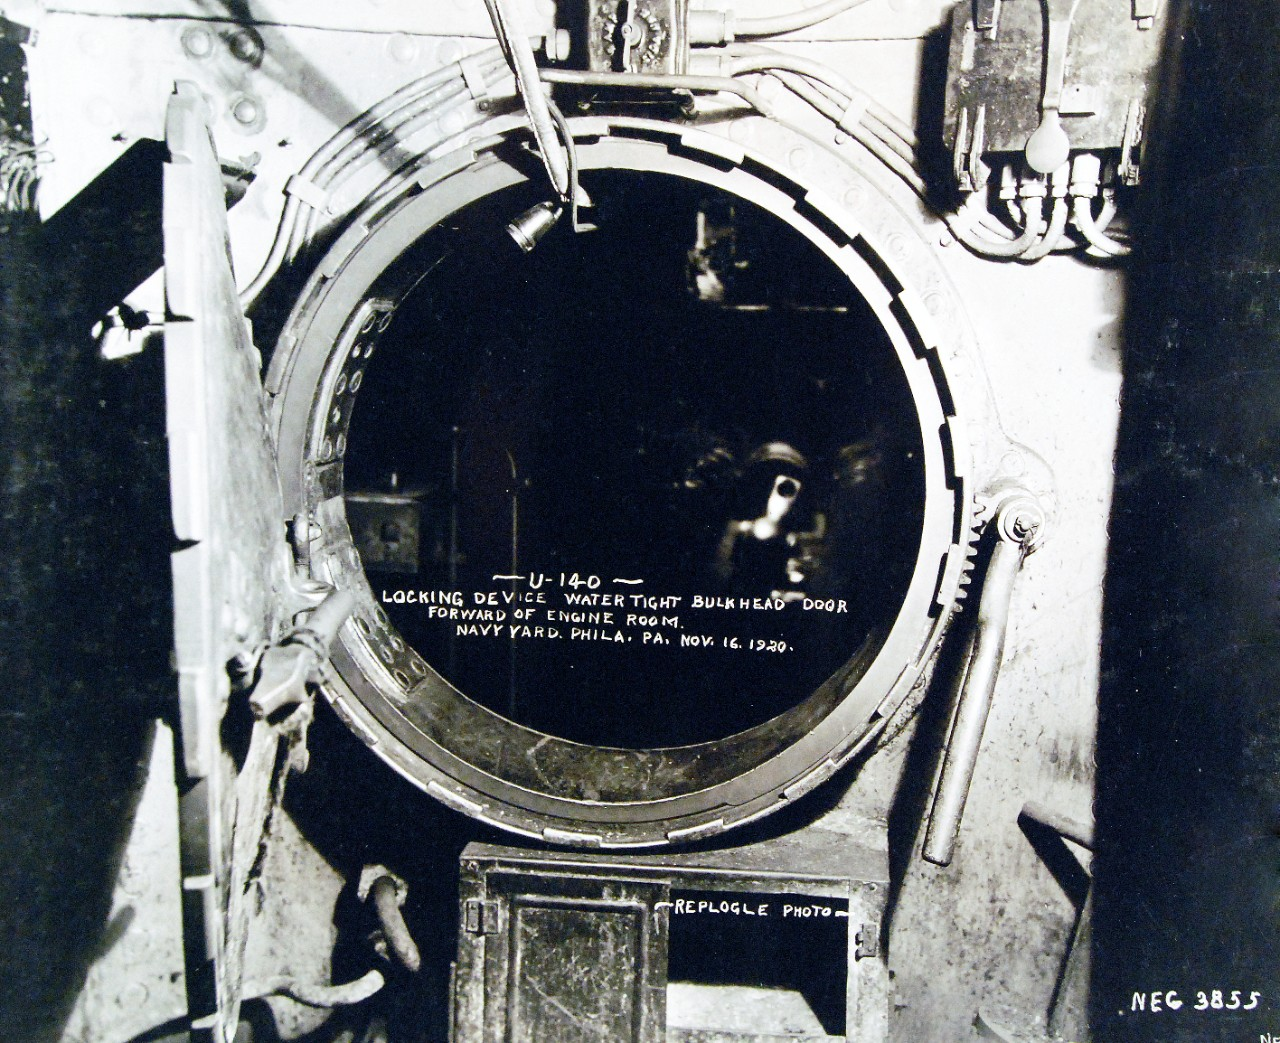 19-N-3855:  German submarine, U-140, locking device, water-tight bulkhead door, forward of the engine room, while at Philadelphia Navy Yard, Philadelphia, Pennsylvania, November 16, 1920. Official Bureau of Ships Photograph, now in the collections of the National Archives.    (12/09/2014).